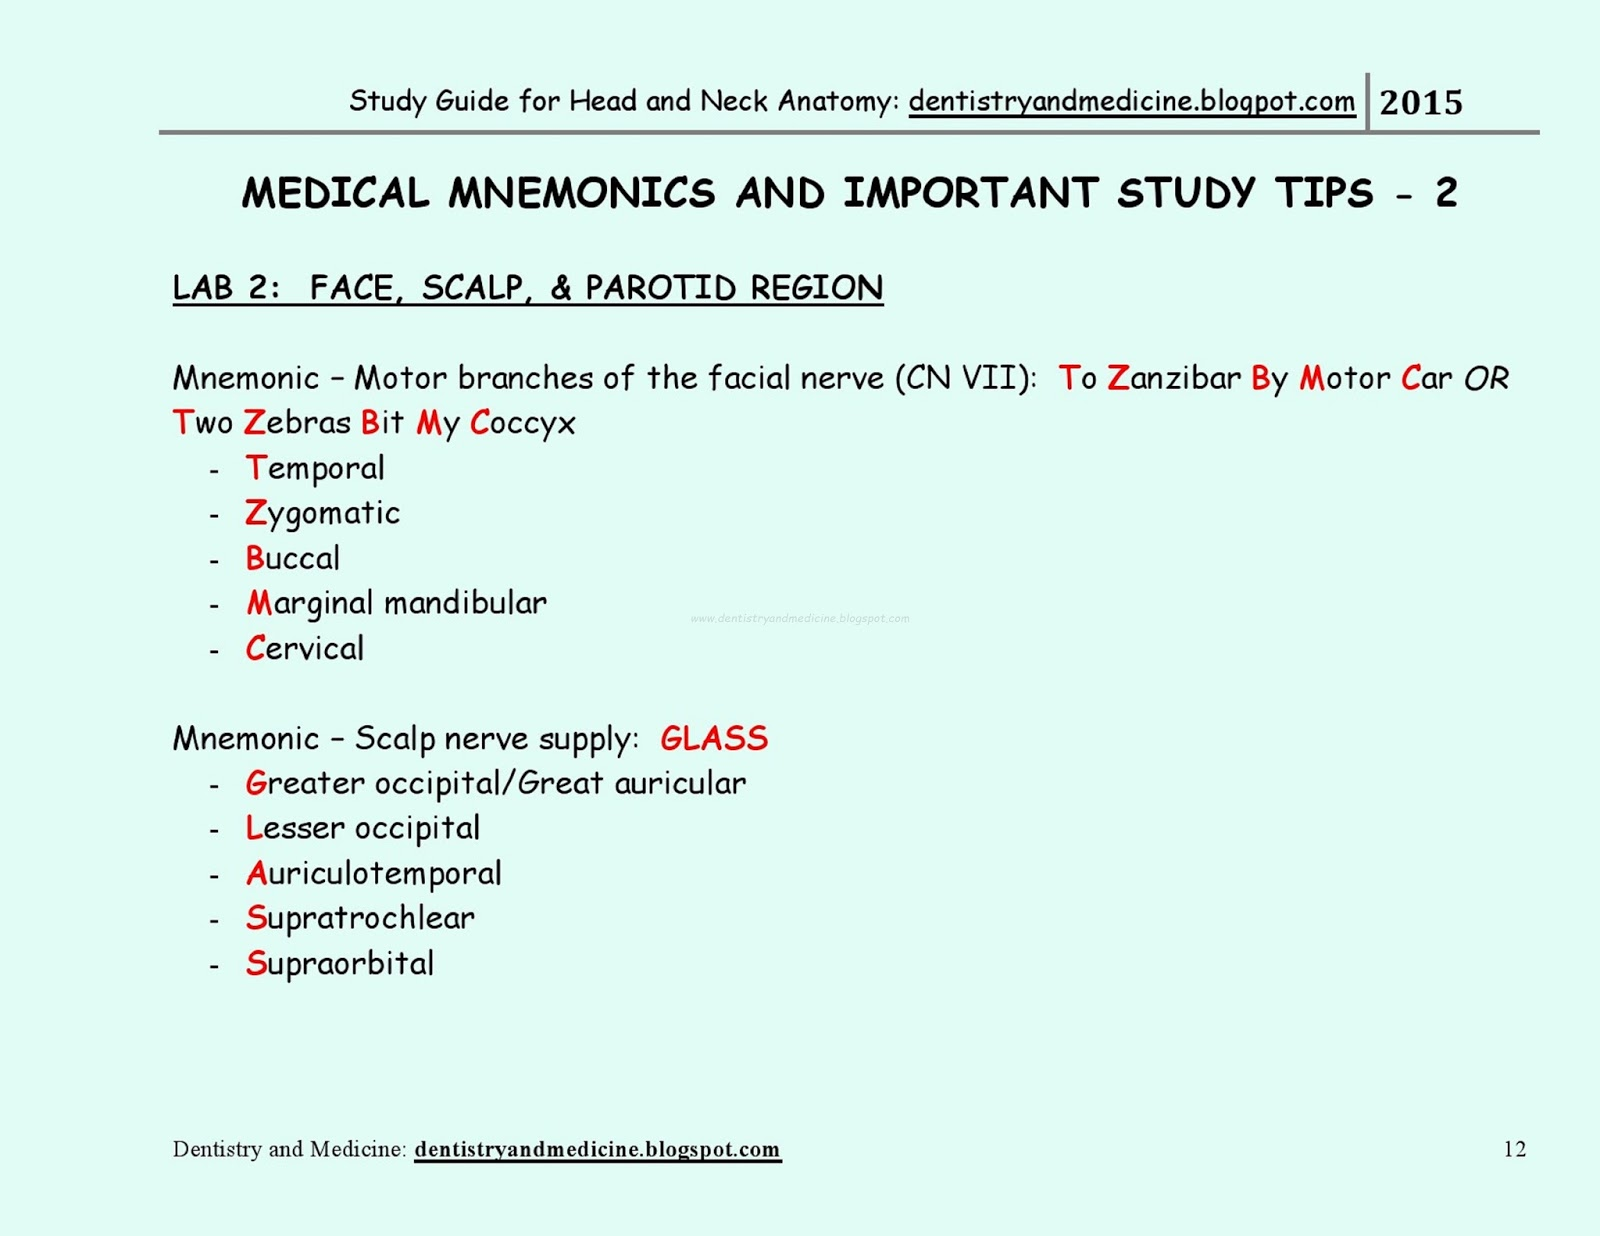 STUDY GUIDE FOR HEAD AND NECK ANATOMY - Medical Mnemonics ...